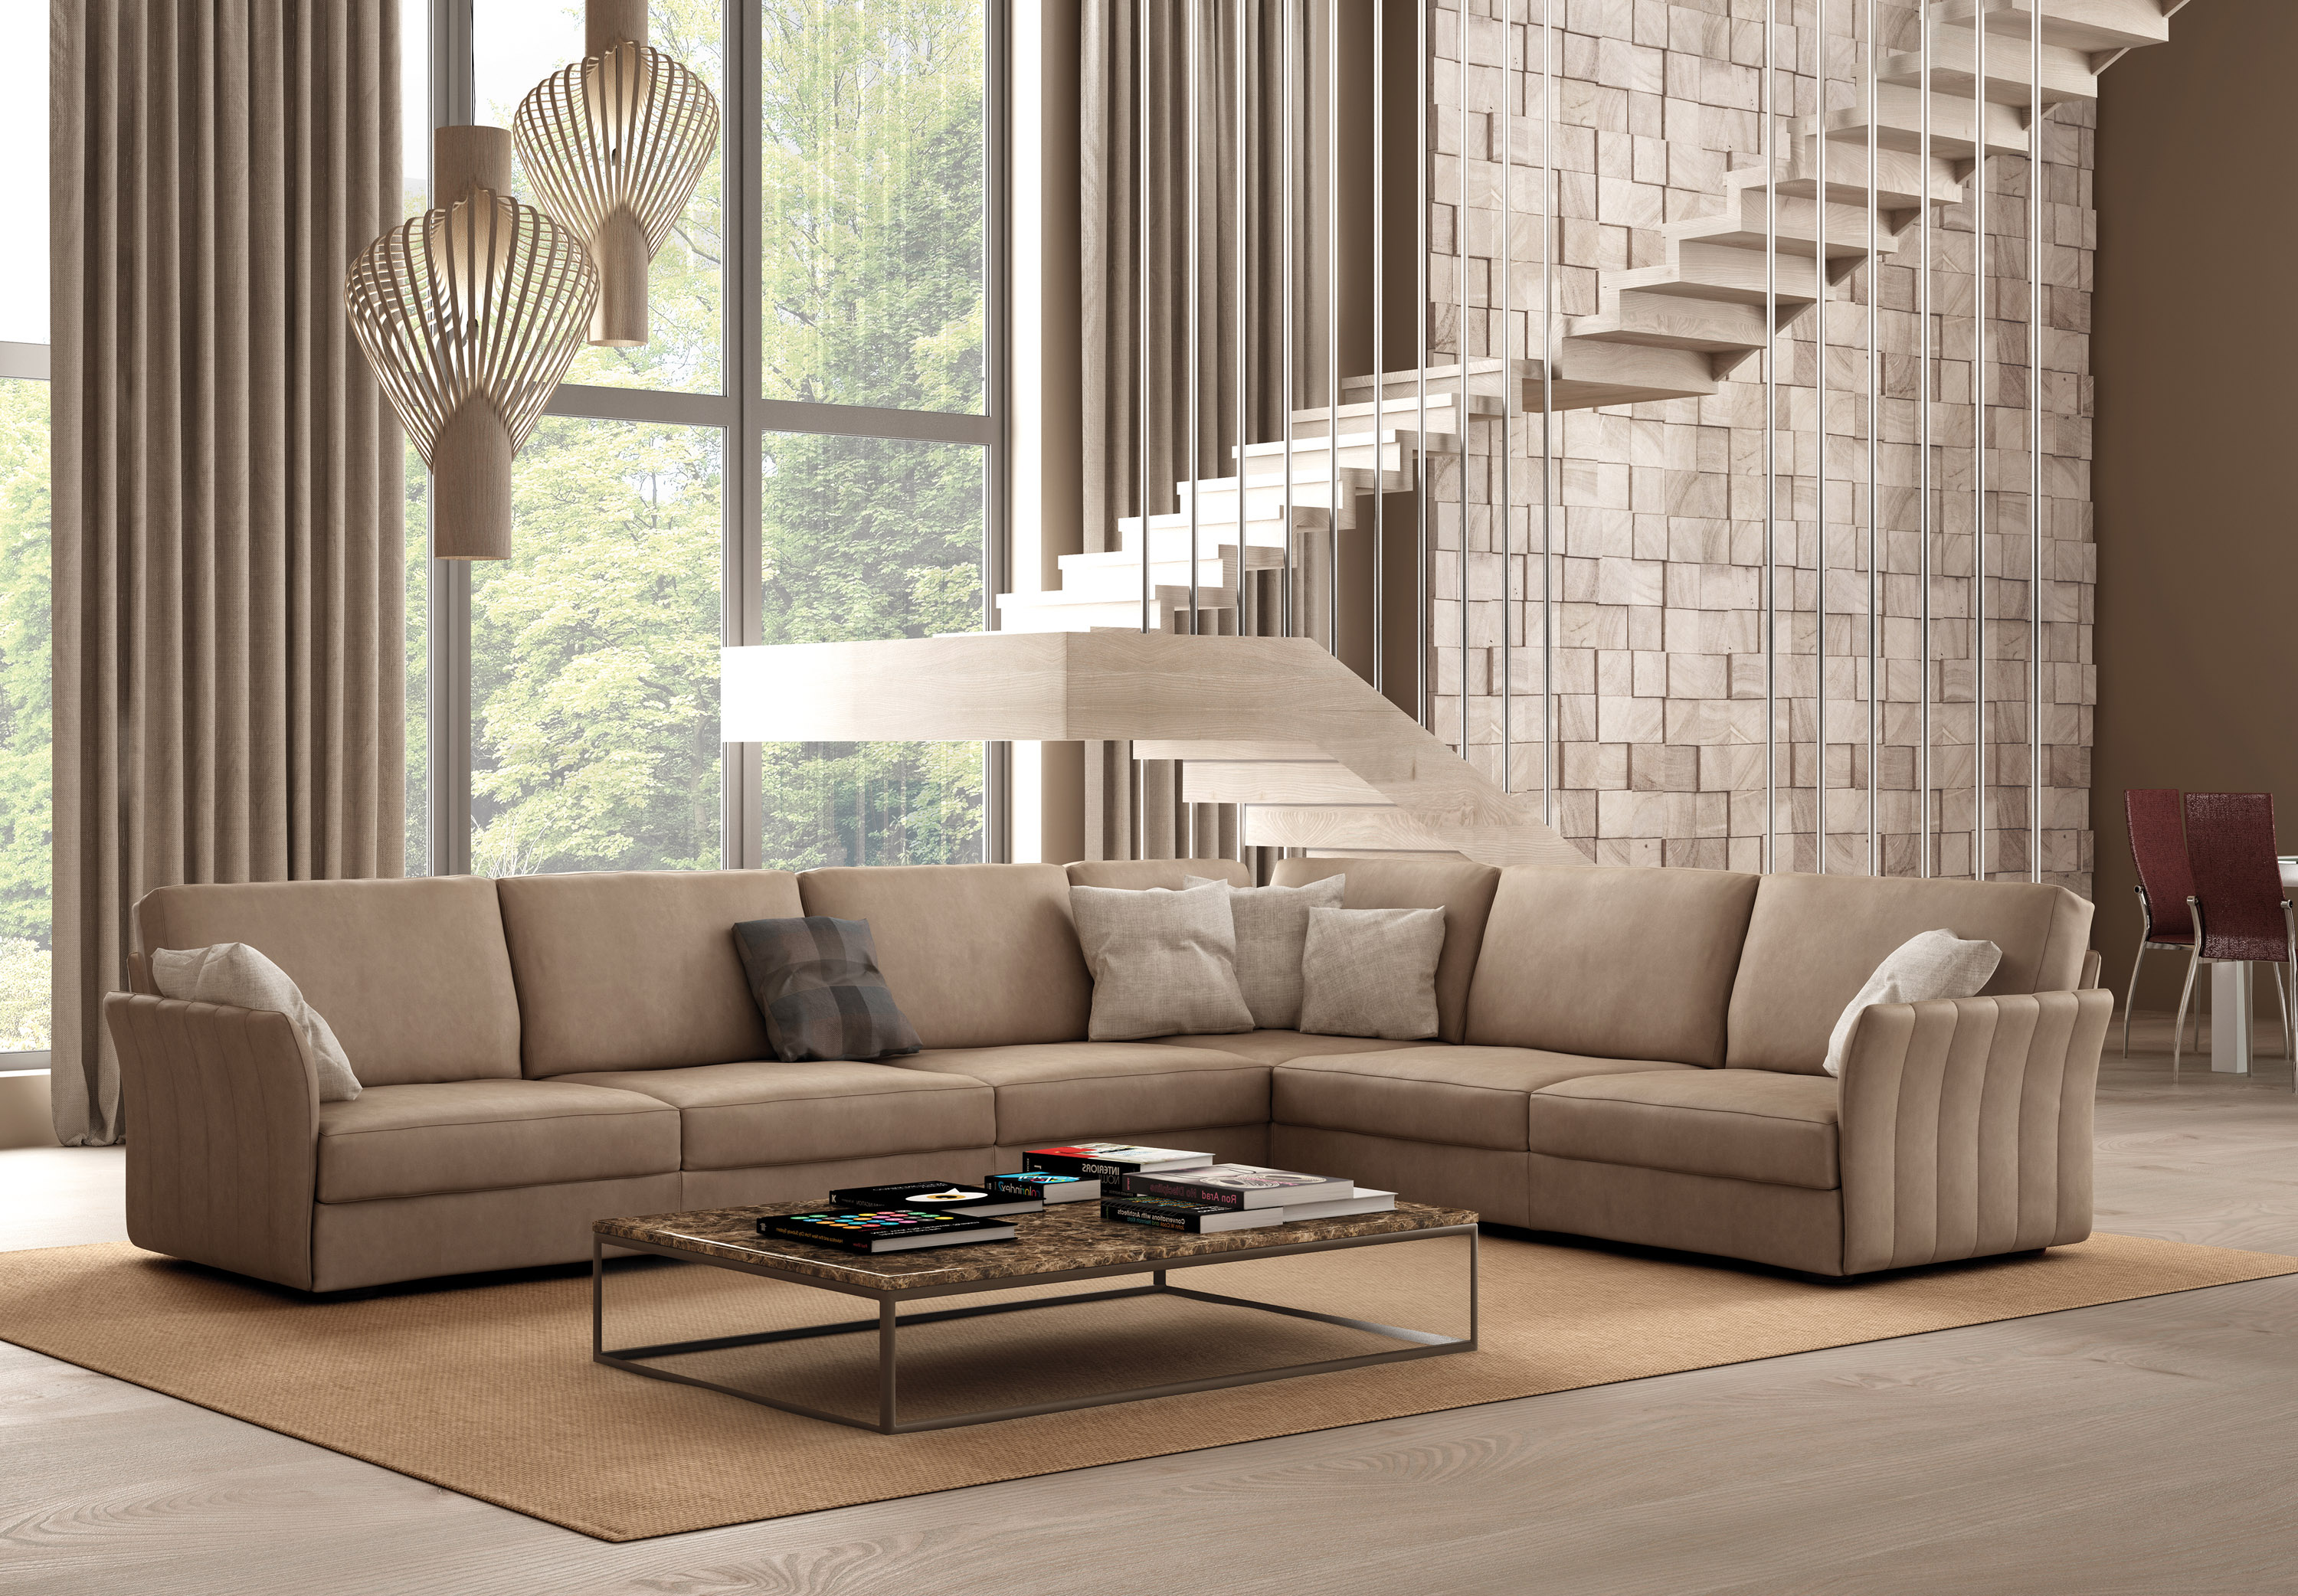 italian sectional sofas leather denver sofa set in luxury fort worth